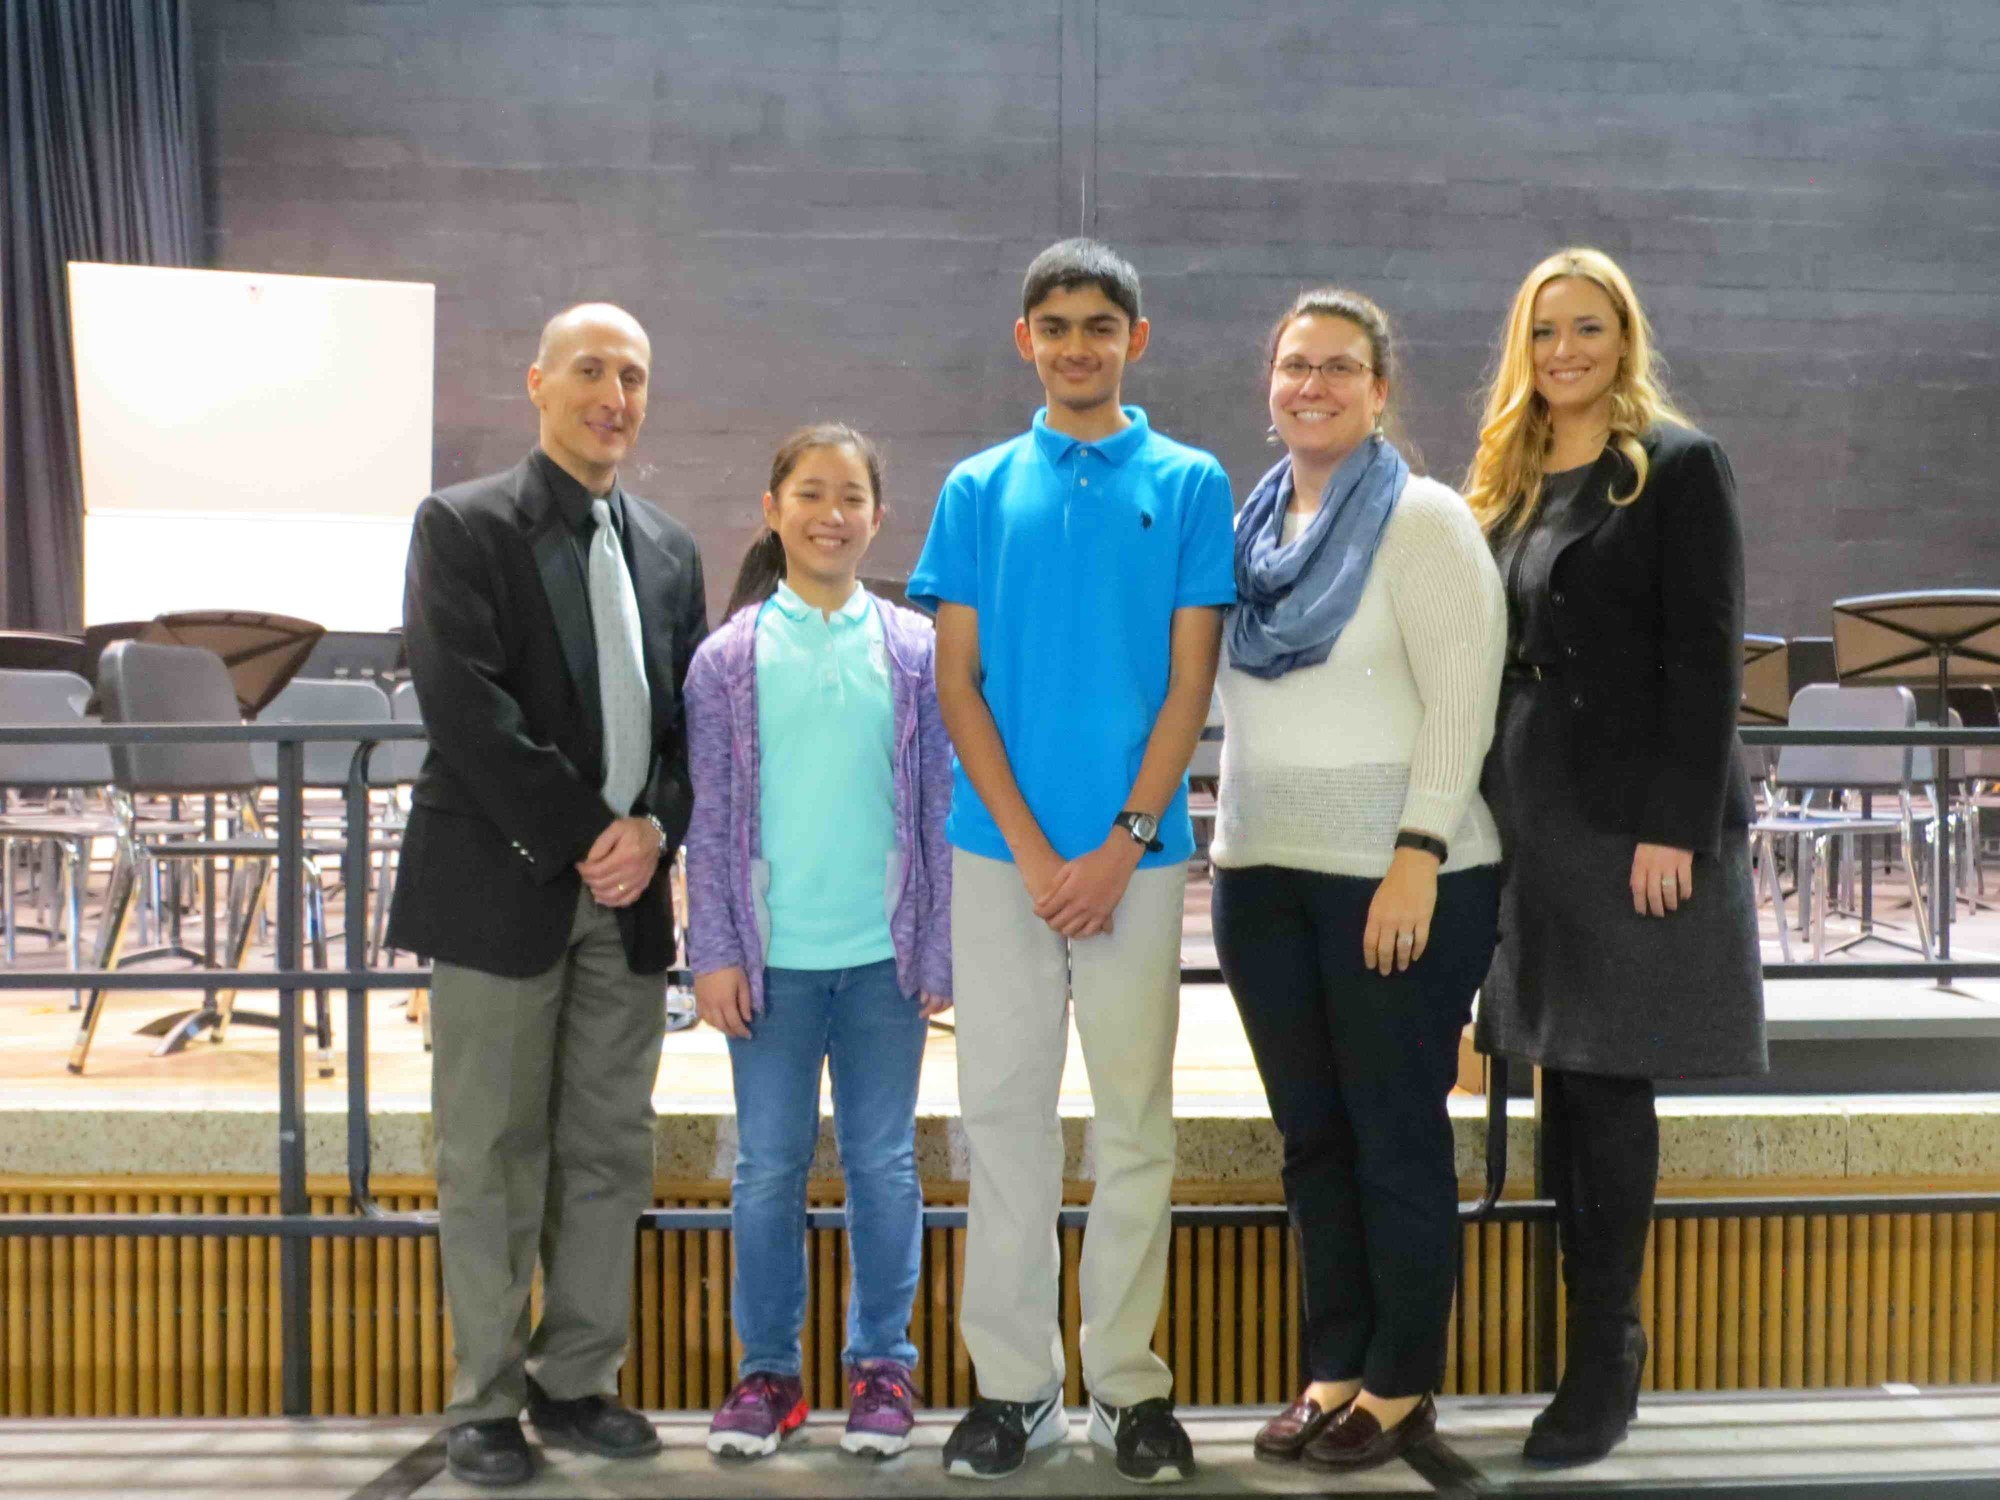 Two W.T. Clarke Middle School students were honored.